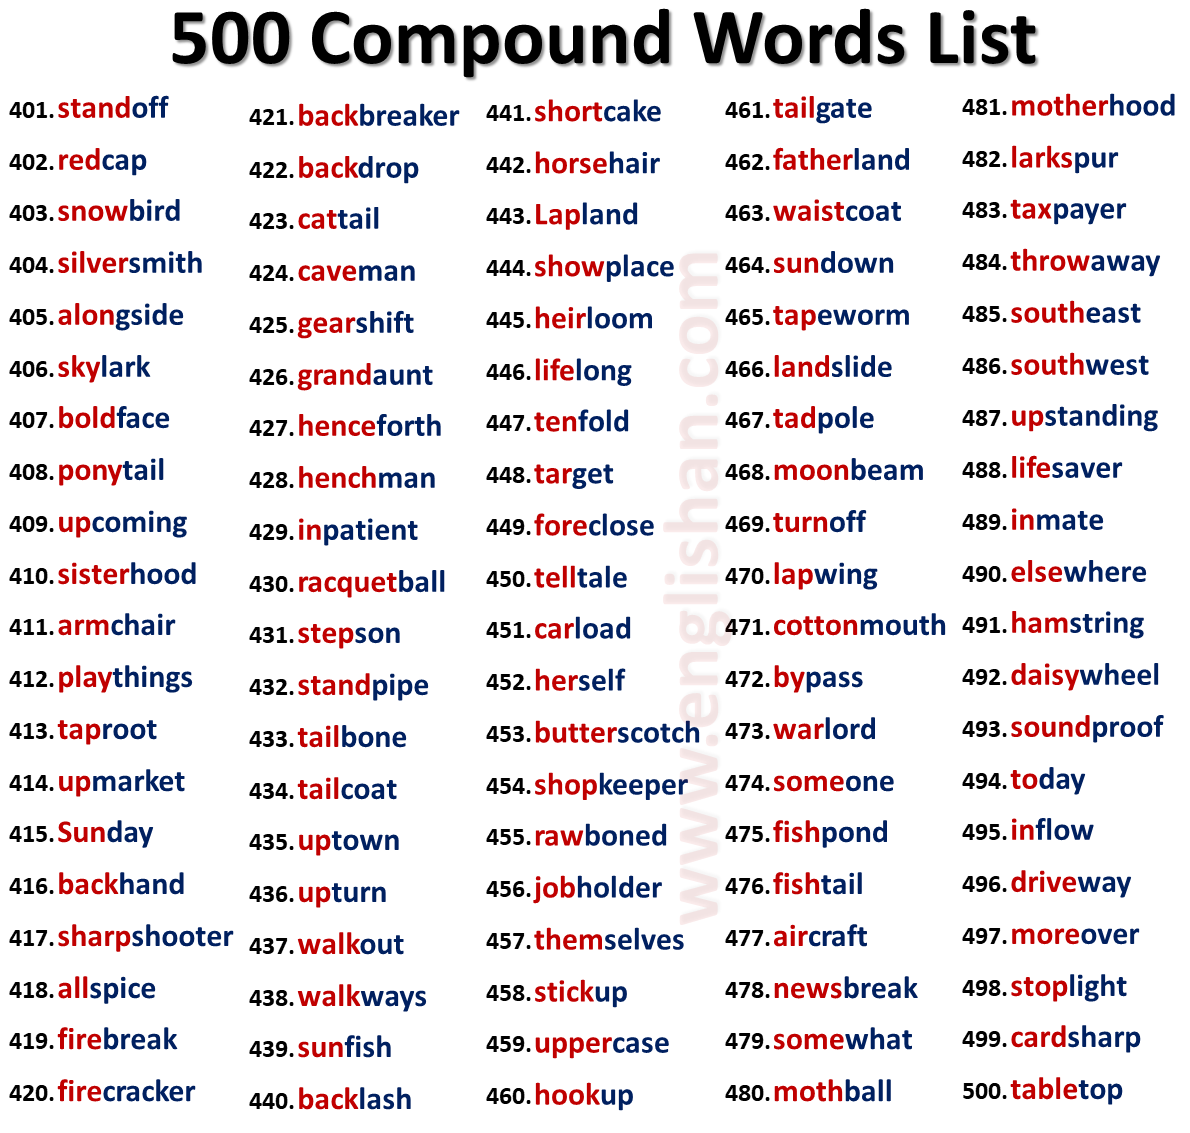 Types of Compound Words